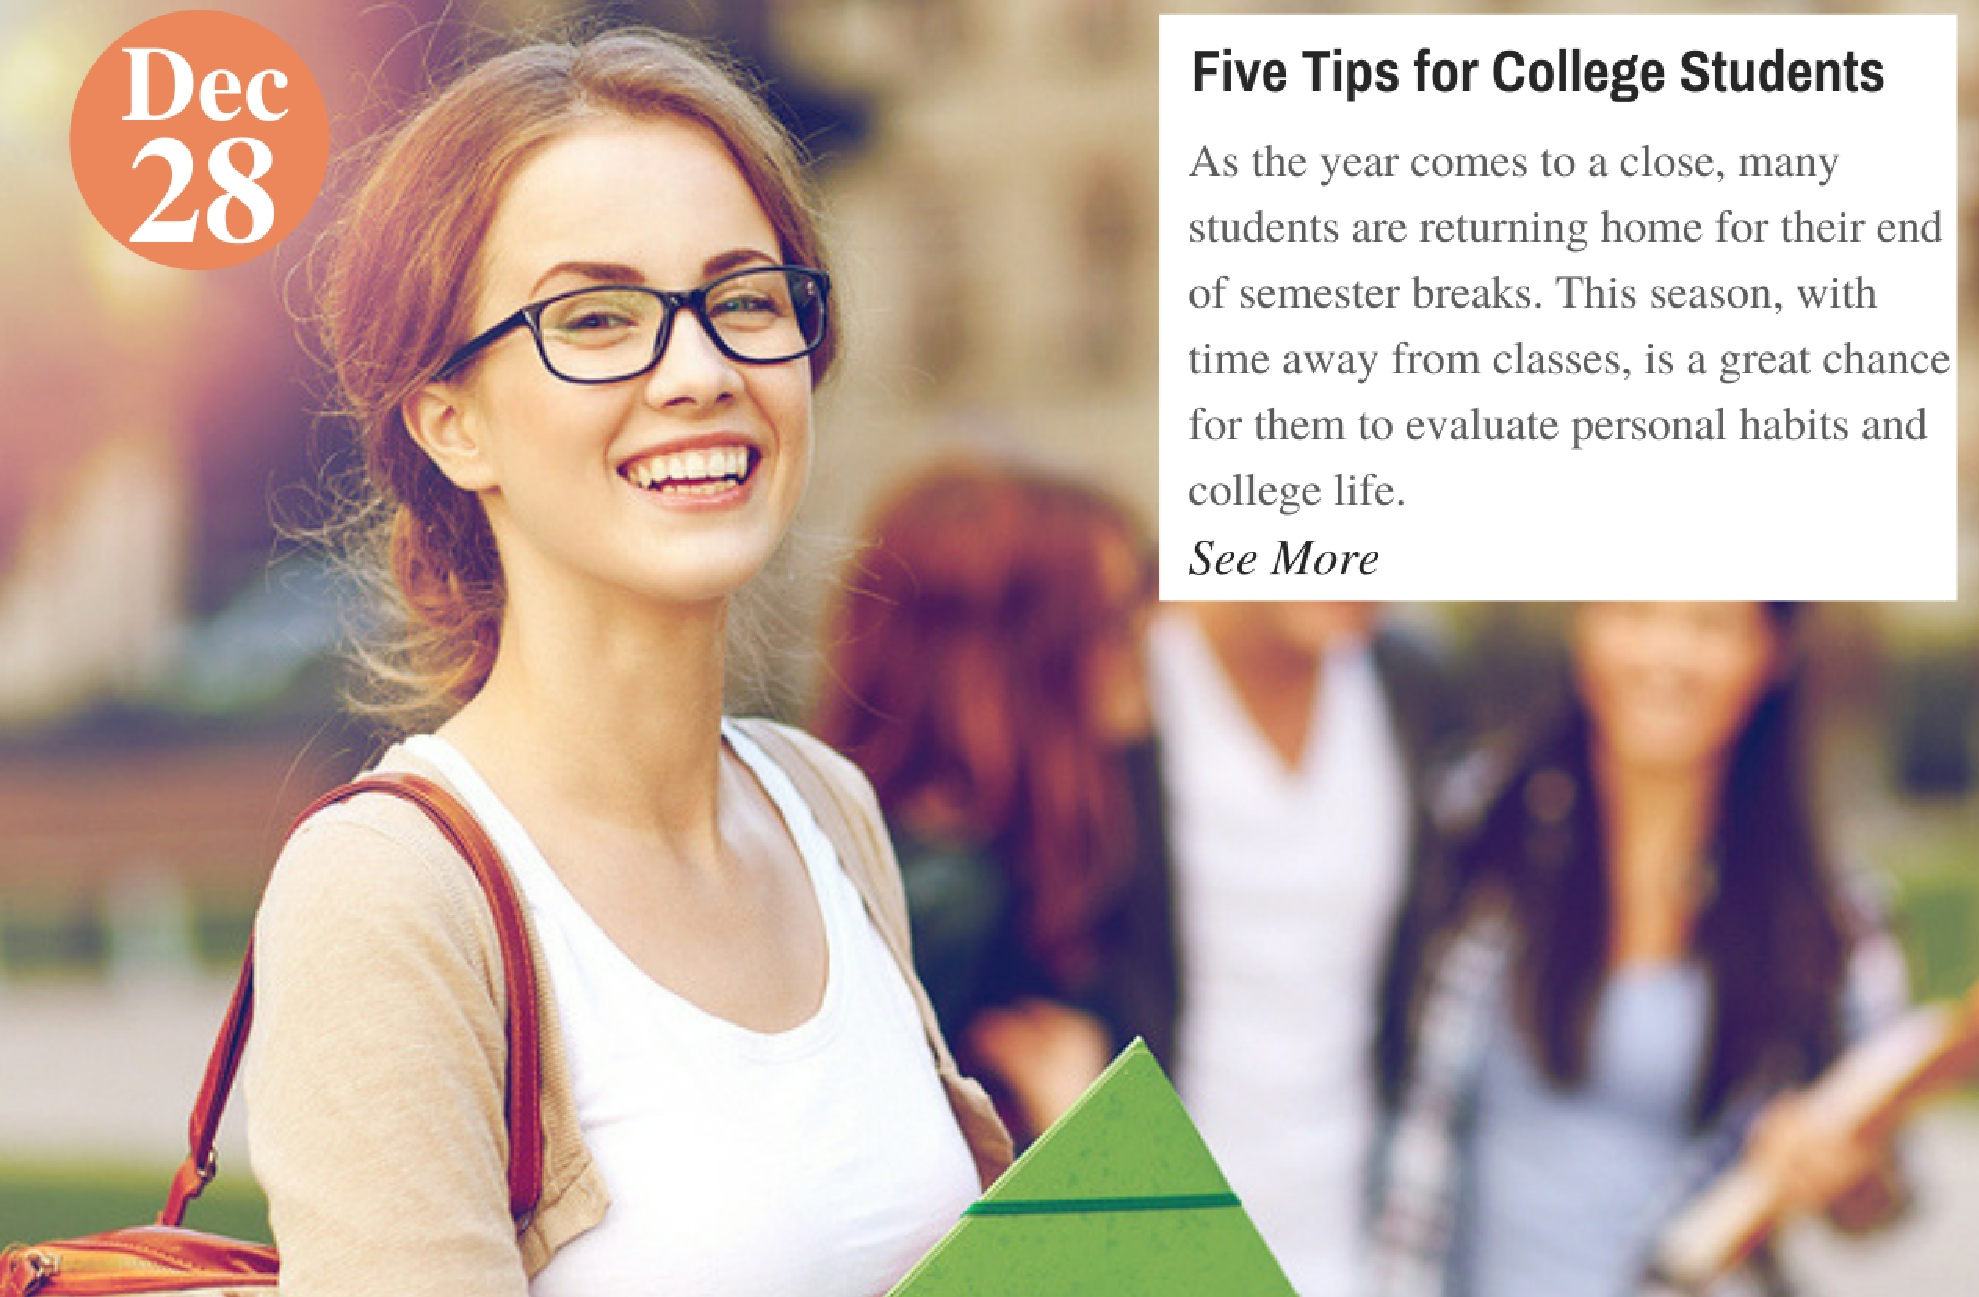 Five Tips for College Students